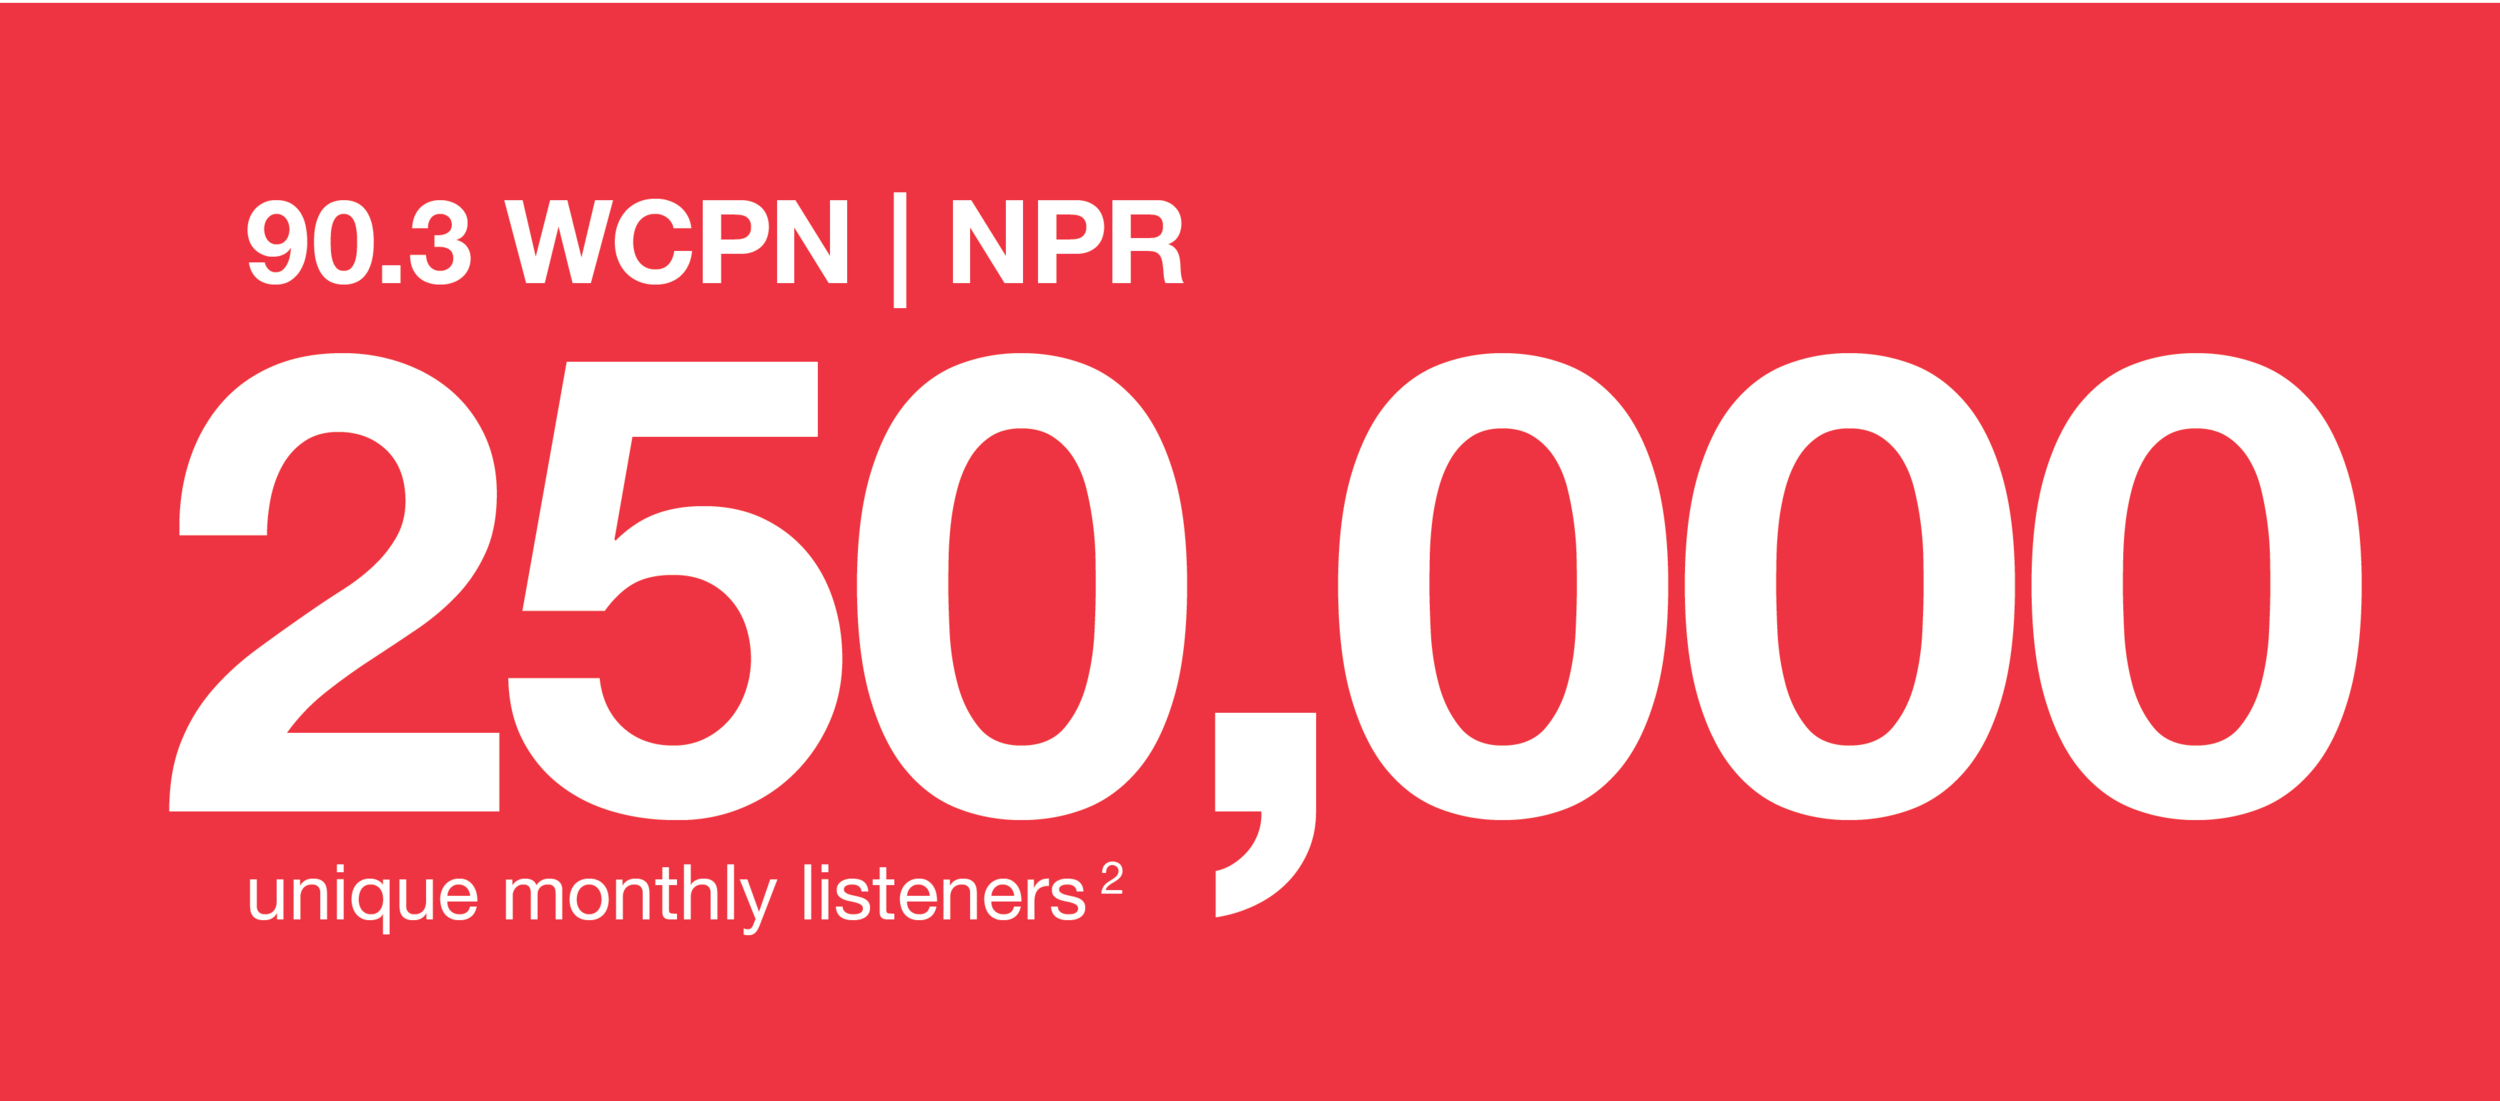 ideastream_WCPN NPR.png